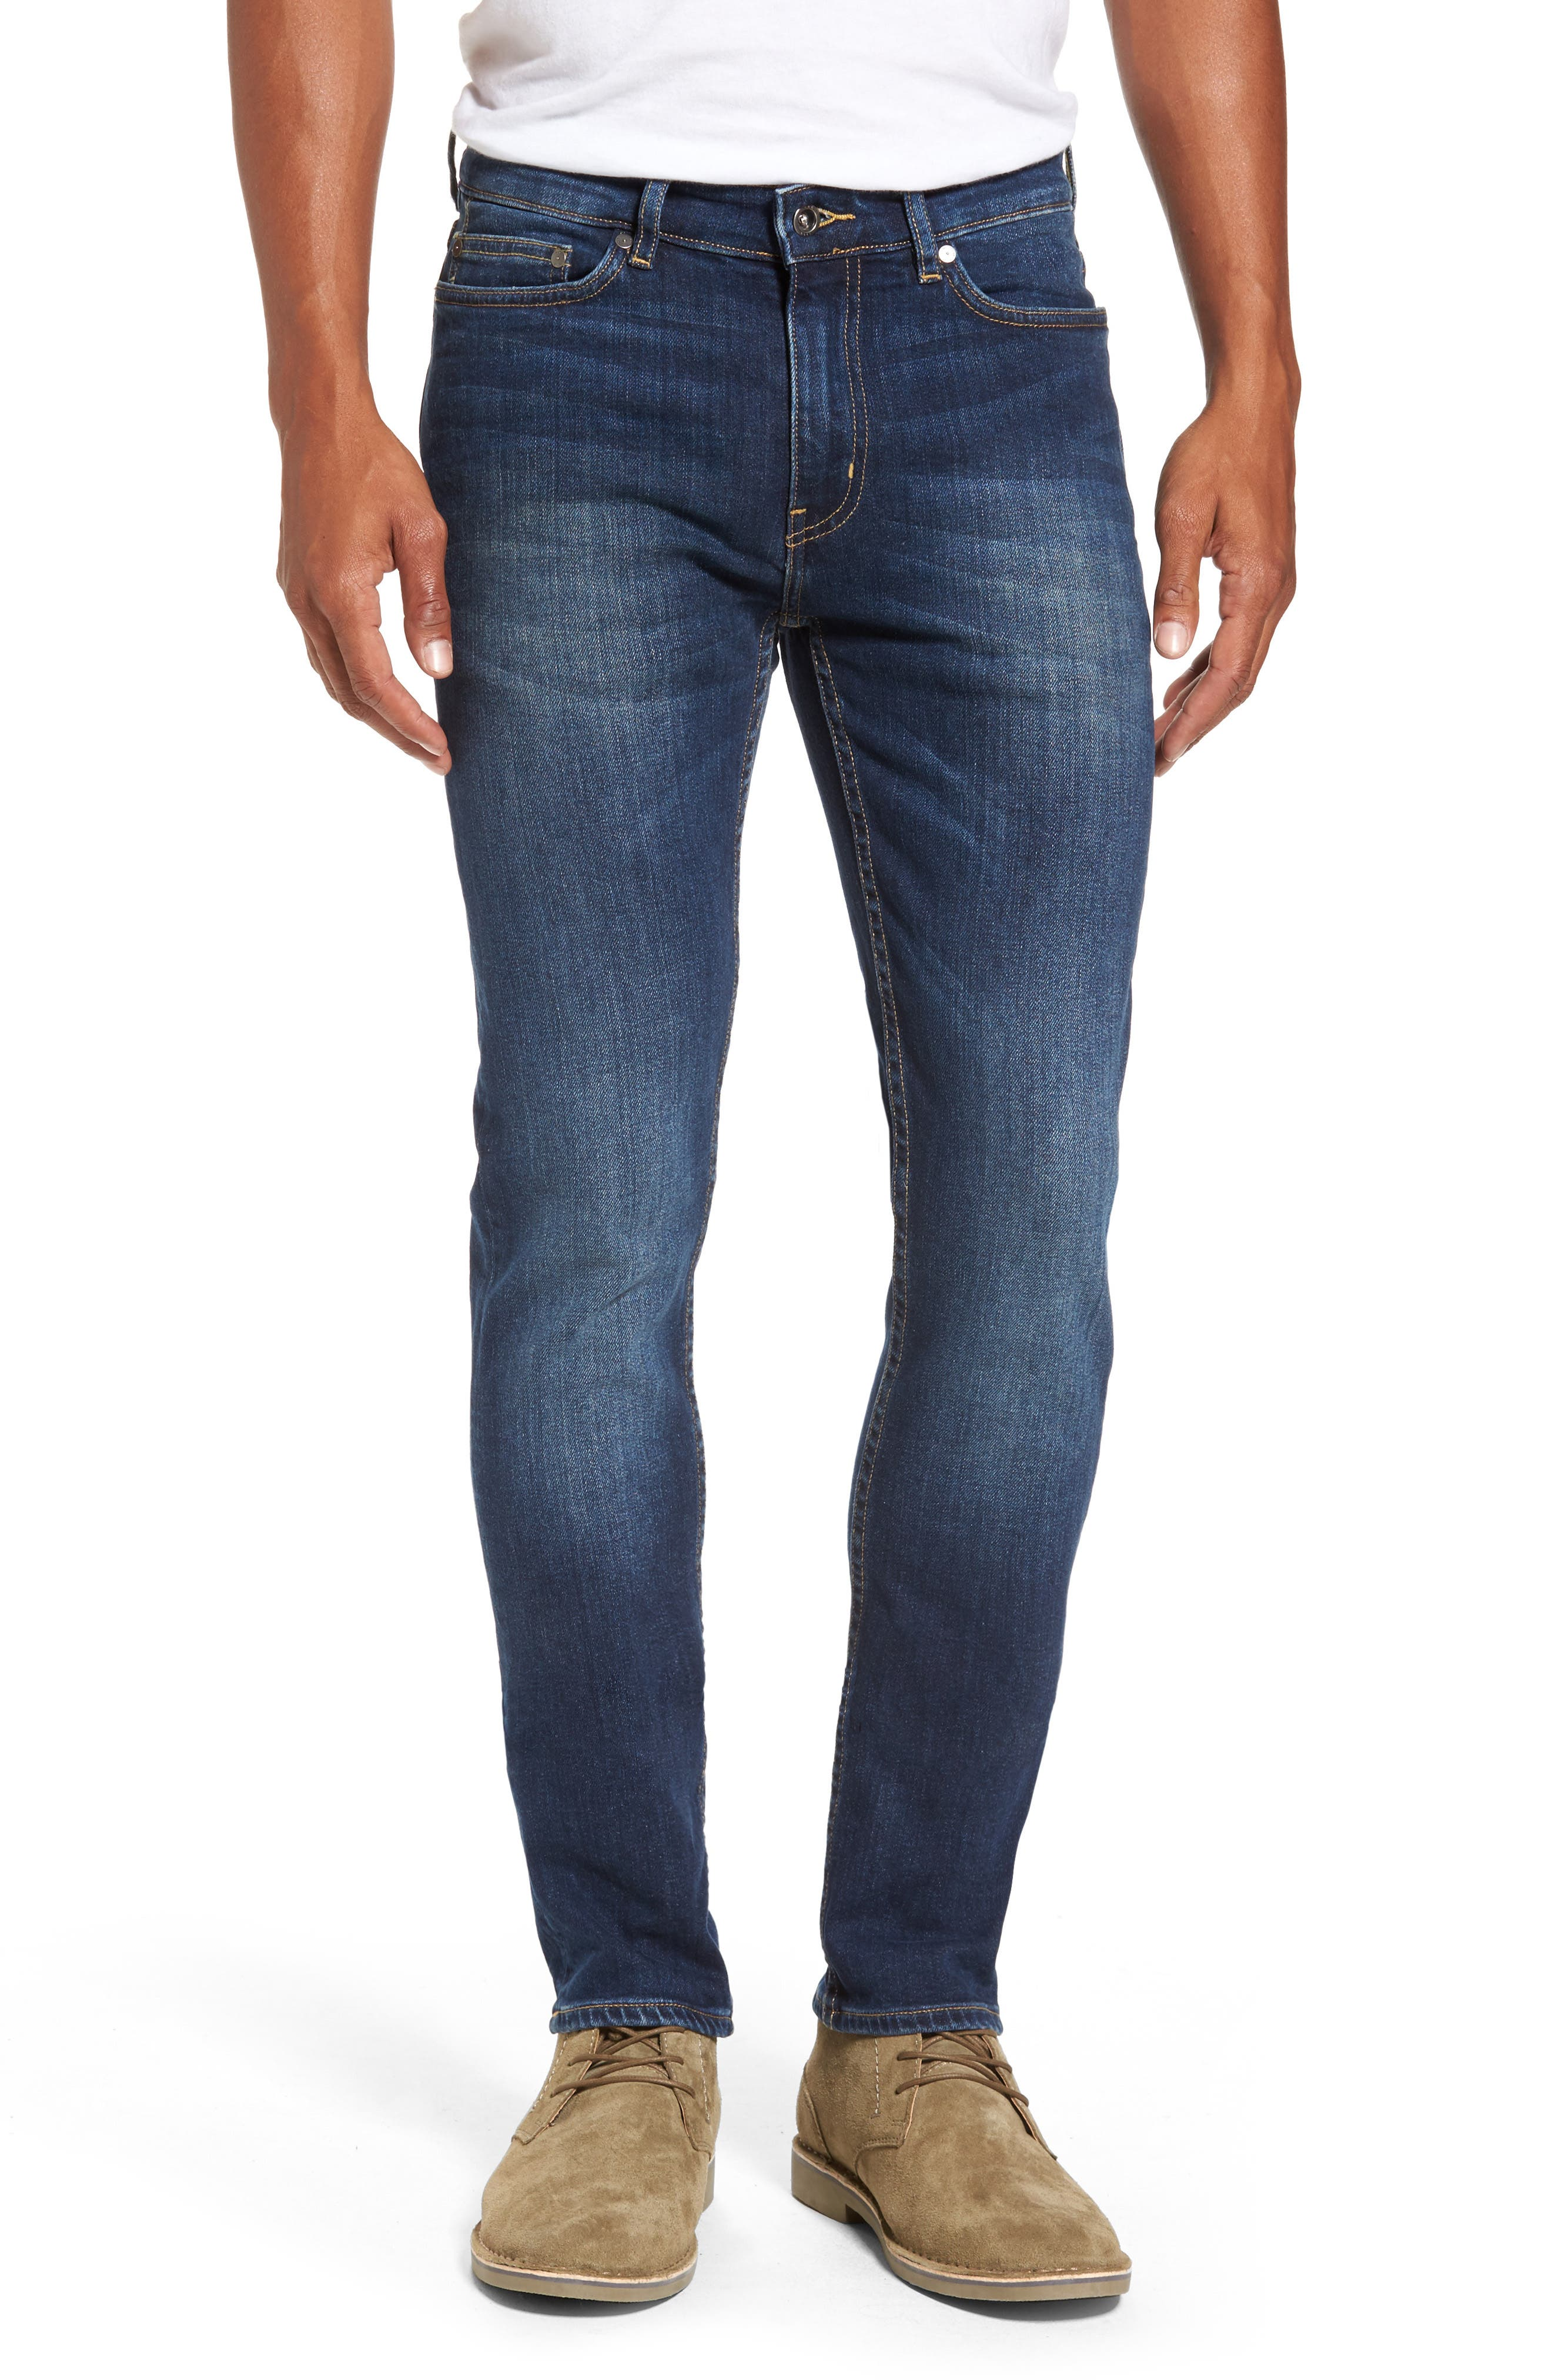 Main Image - Rodd & Gunn Derbyshire Slim Fit Jeans